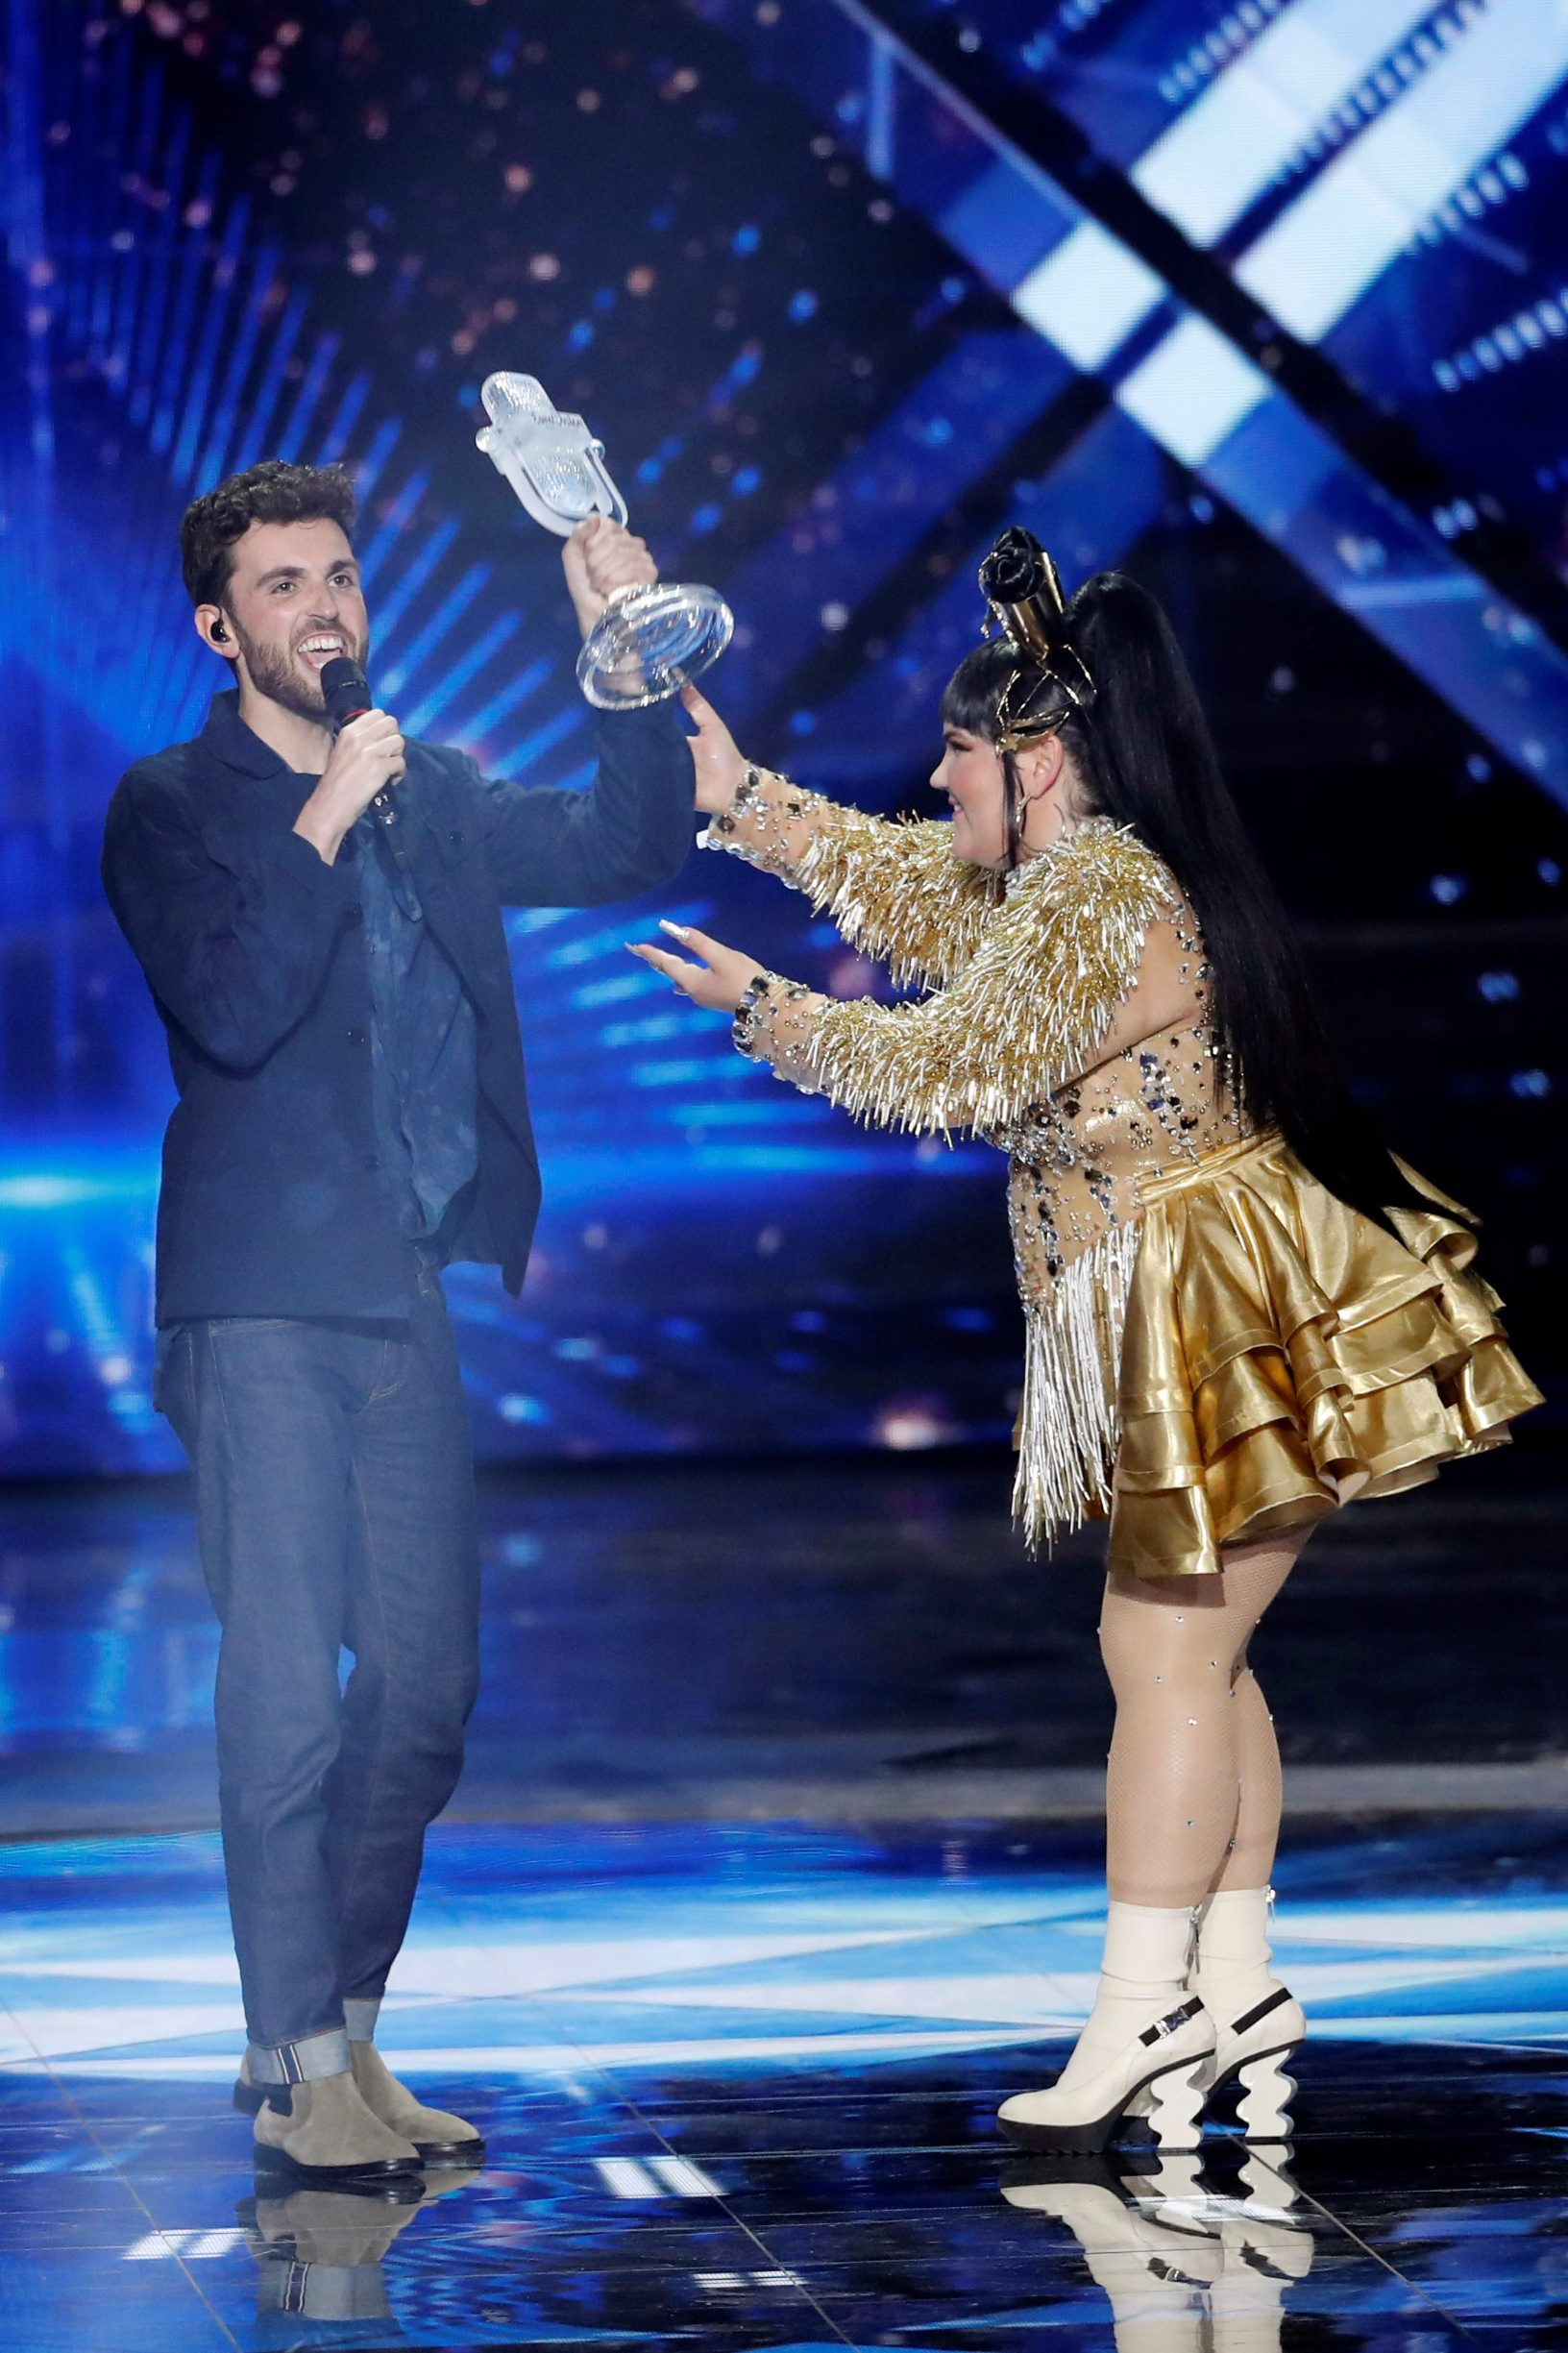 Israel's Netta Barzilai, winner of last year's Eurovision Song Contest, hands the trophy to Duncan Laurence of the Netherlands, the winner of the 2019 Eurovision Song Contest in Tel Aviv, Israel May 19, 2019. REUTERS/Ronen Zvulun